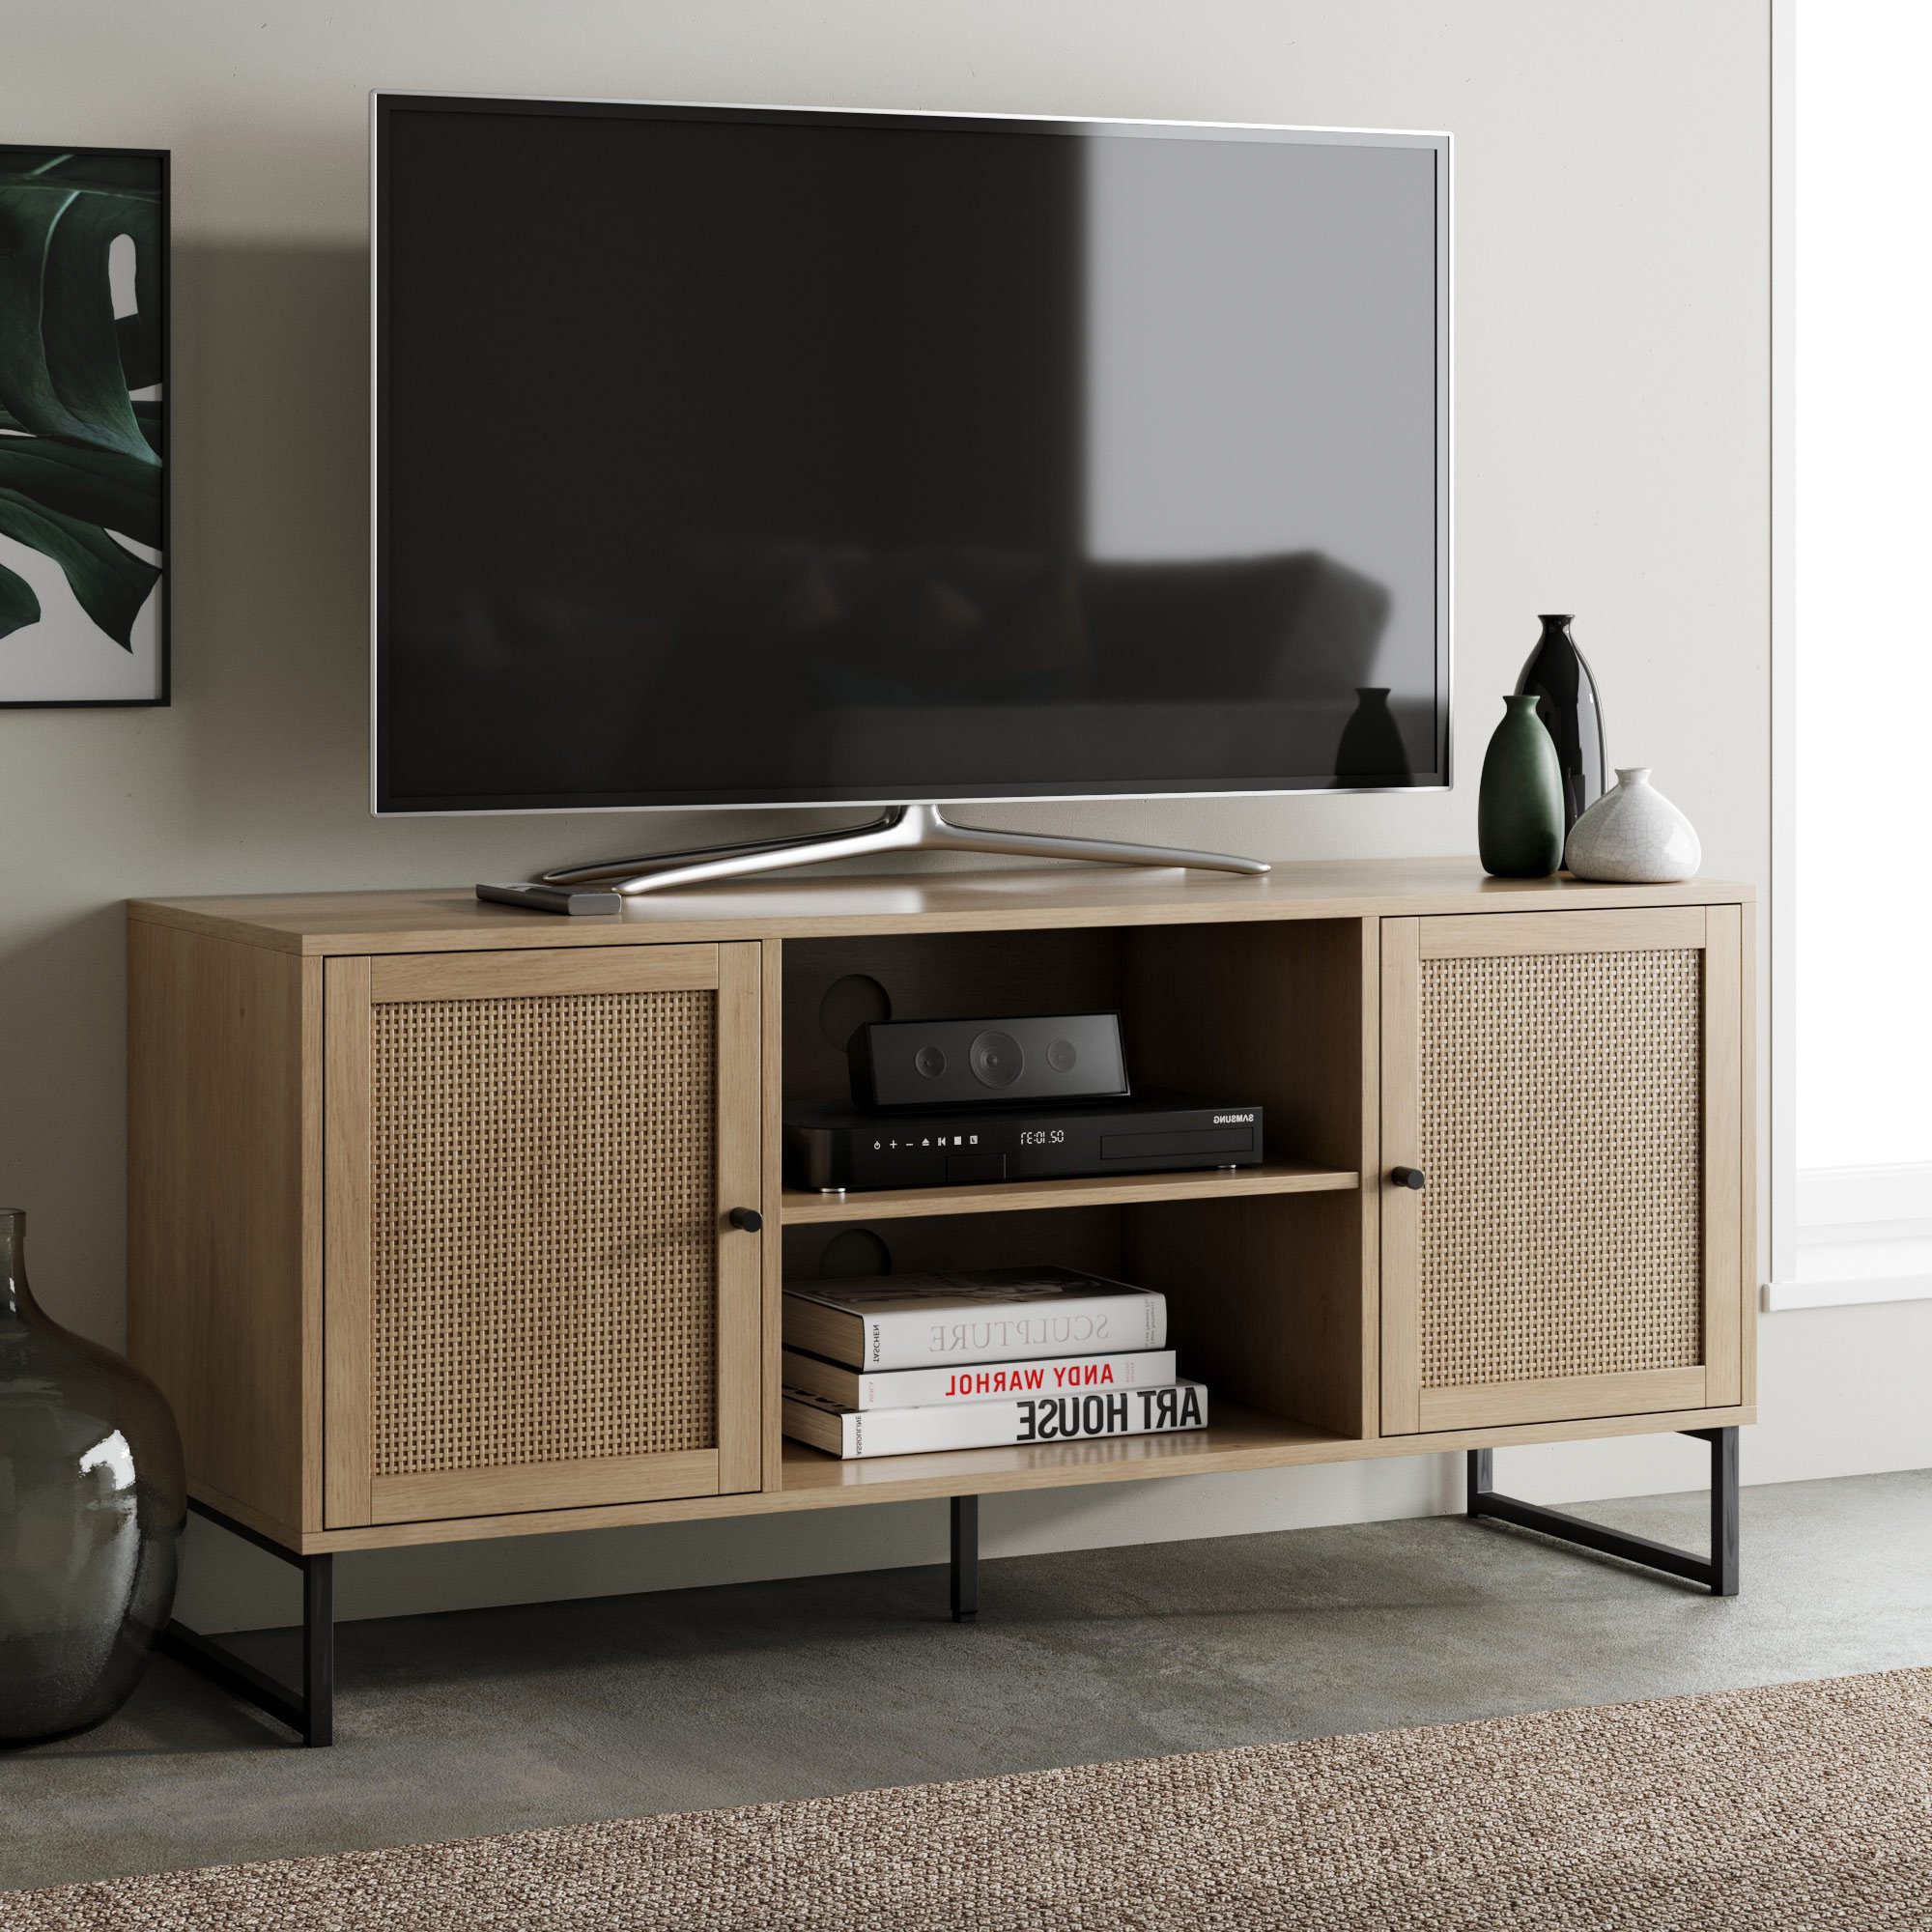 Nathan James Mina Modern Tv Stand Entertainment Cabinet With Modern Black Tv Stands On Wheels (View 9 of 20)